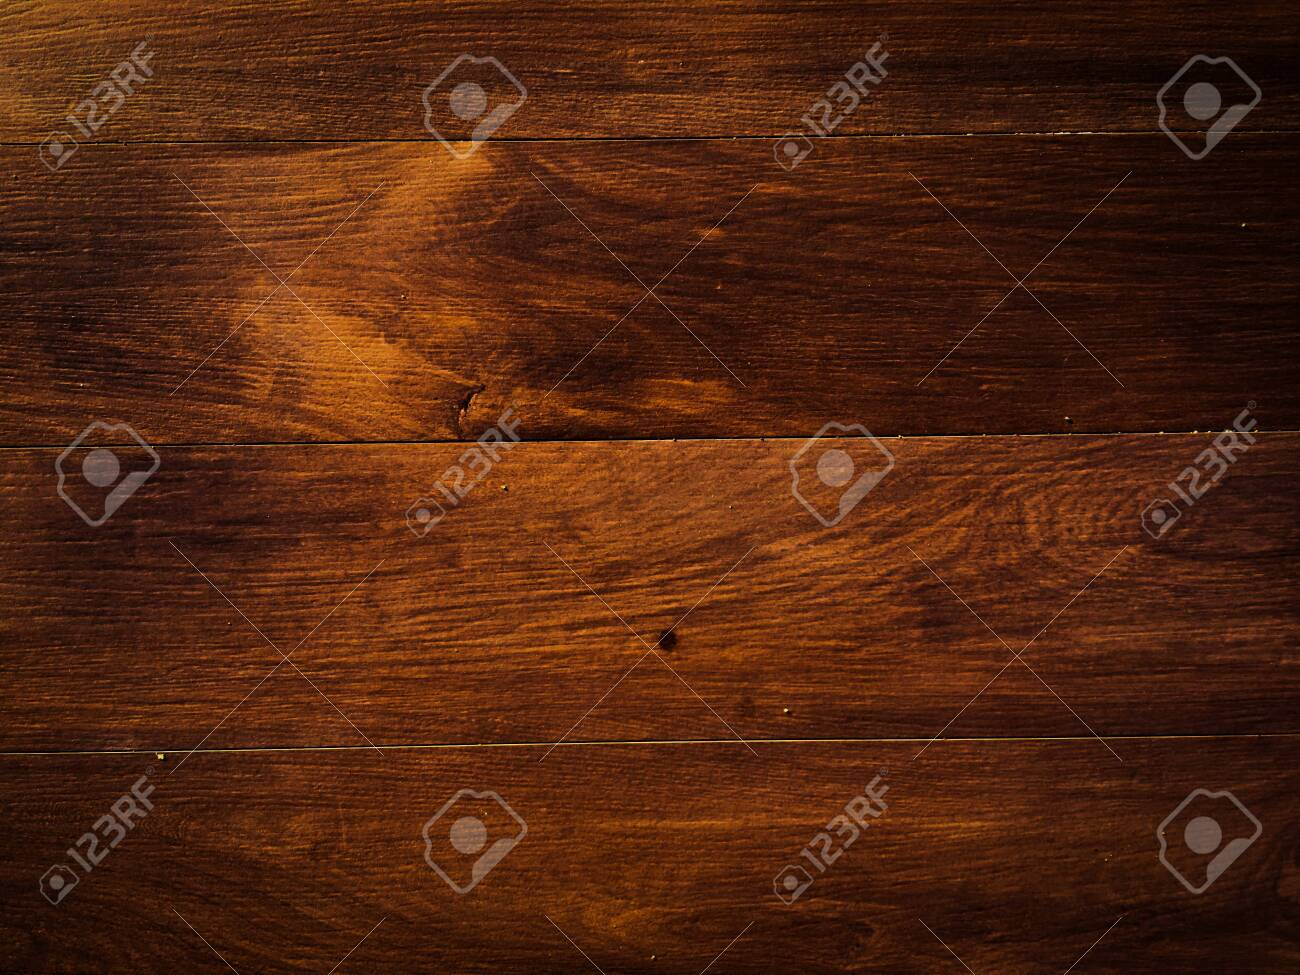 Wooden plank texture background for work and design - 140015799